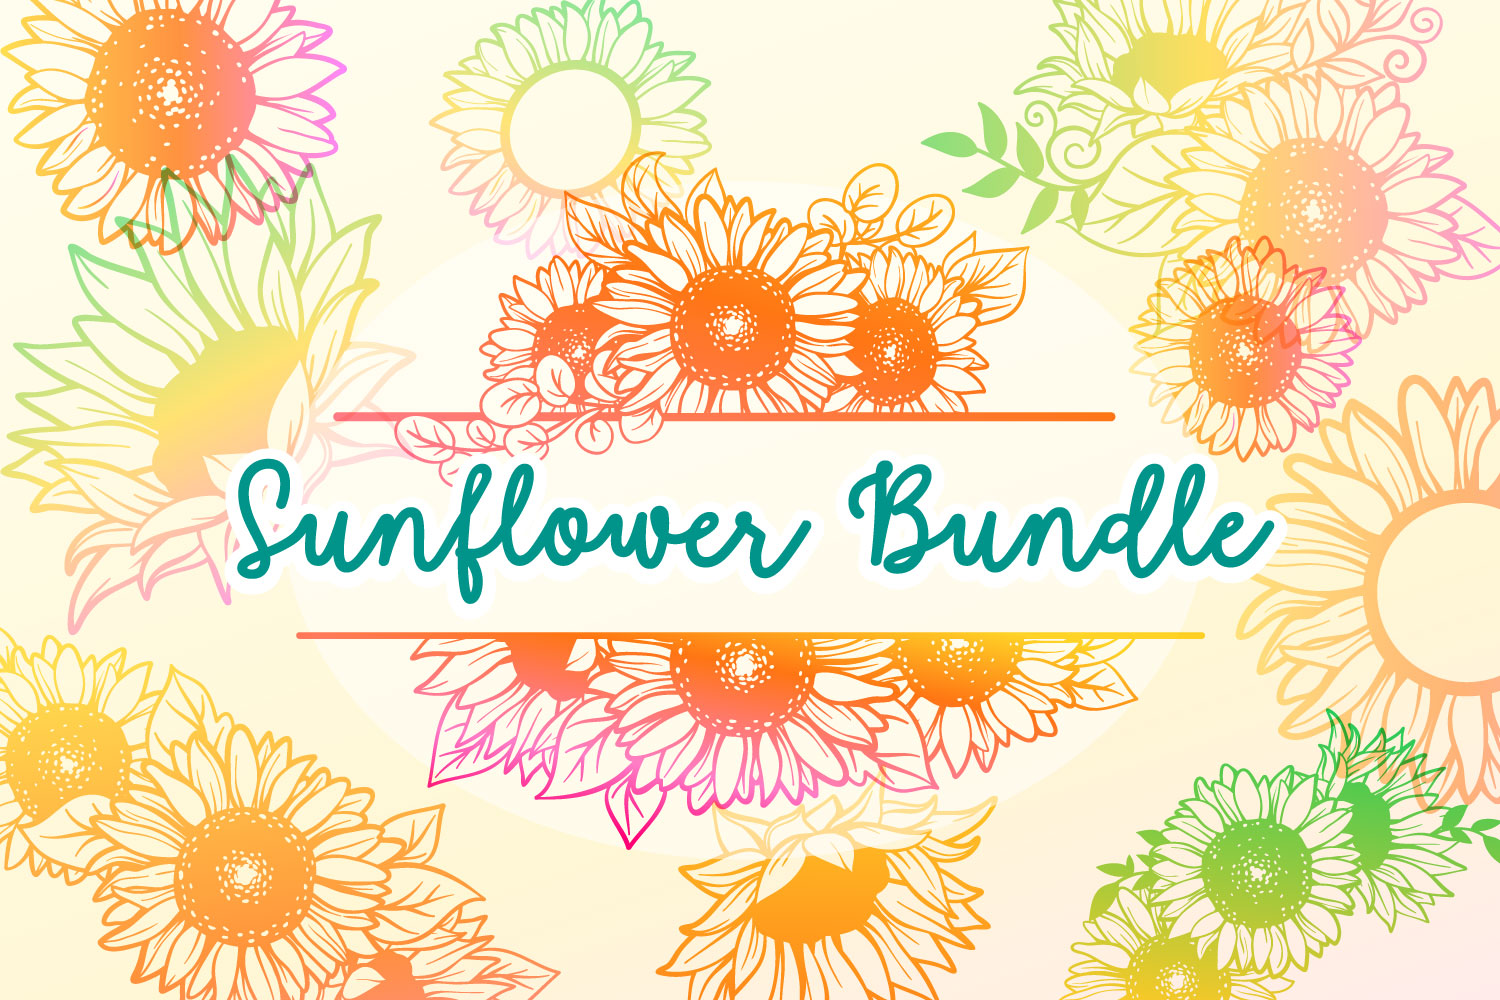 Download Free Sunflower Bundle 17 Cut Files Graphic By Tatiana Cociorva for Cricut Explore, Silhouette and other cutting machines.